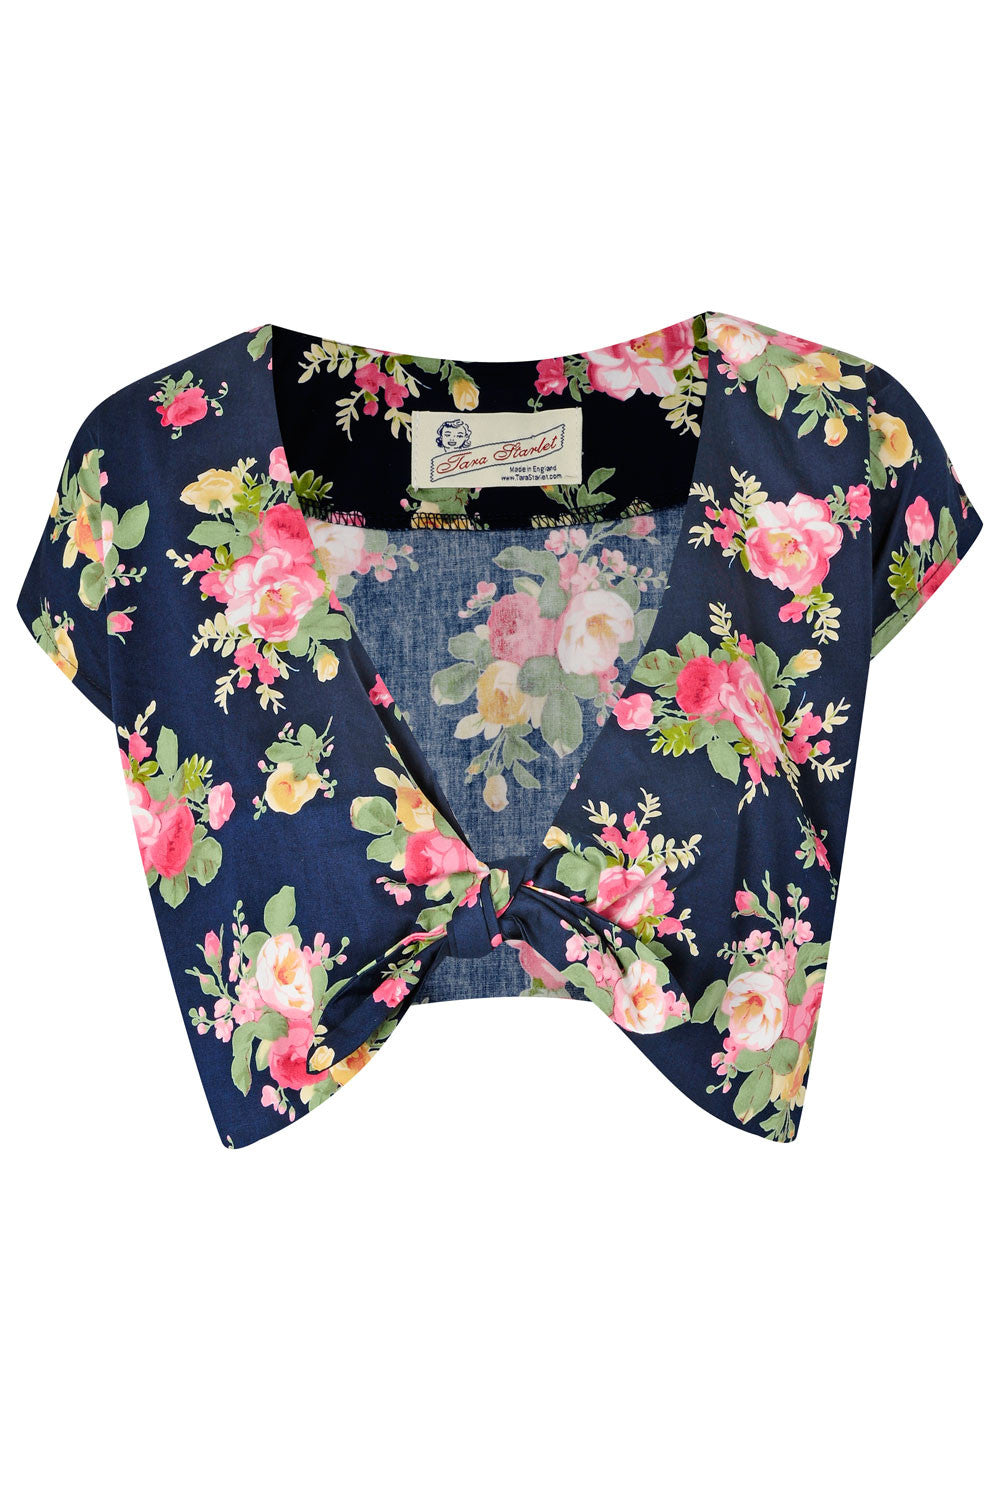 The Floral Knot Top - Navy